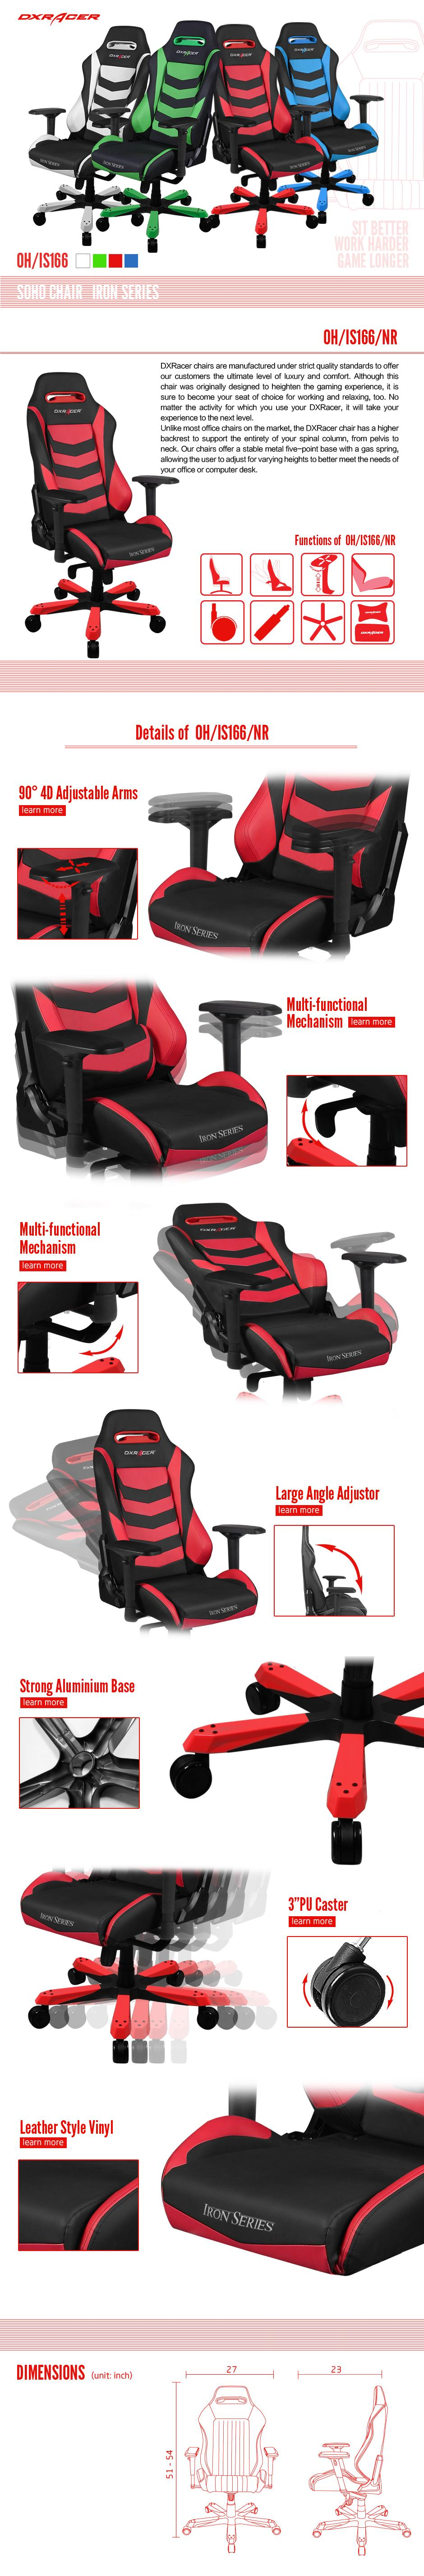 DXRacer Iron Series Soho Chair OHI end 2212018 415 PM : dxracer iron series soho chair is166 nb desktop office gamehypermart 1602 22 gamehypermart46 Office <strong>Desk Chairs</strong> from www.lelong.com.my size 940 x 5708 jpeg 561kB